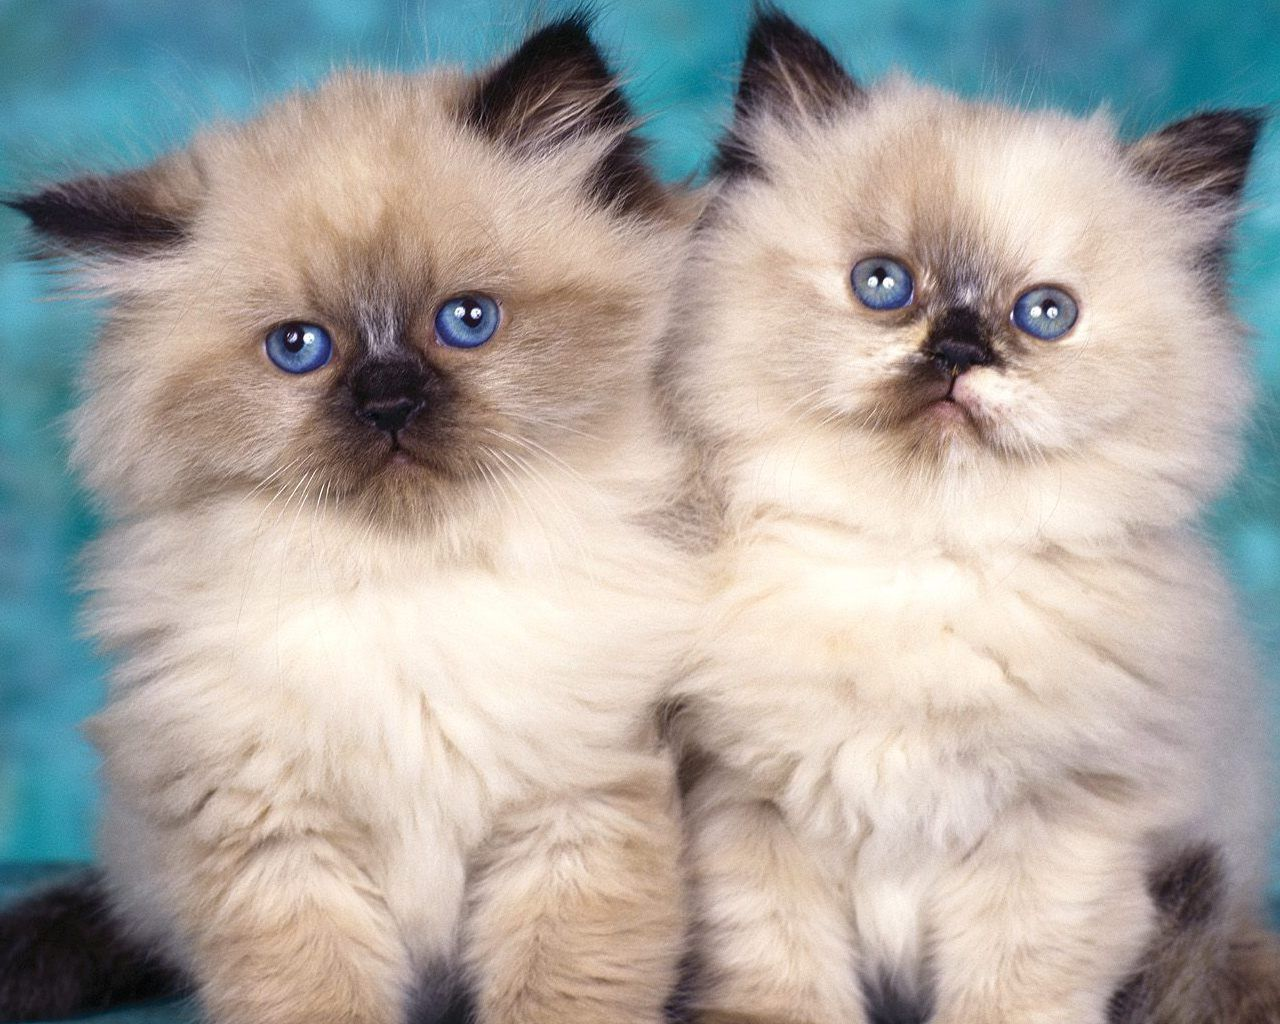 Pictures of himalayan cats and kittens